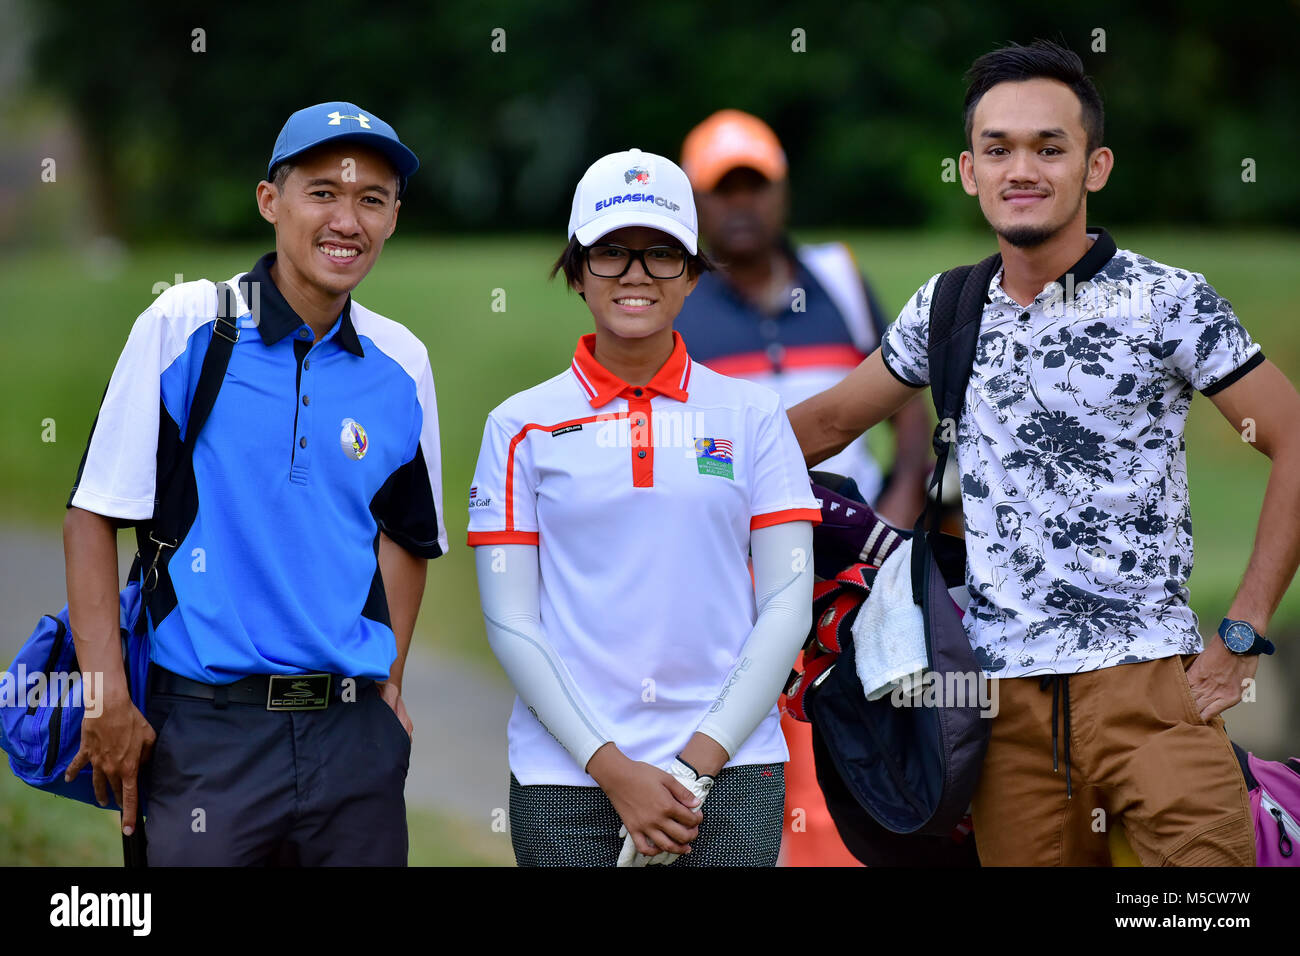 Danau, UKM Bangi - FEBRUARY 10: Eireen Syafeeya takes a photo with her caddie and father on the 11th hole during - Stock Image